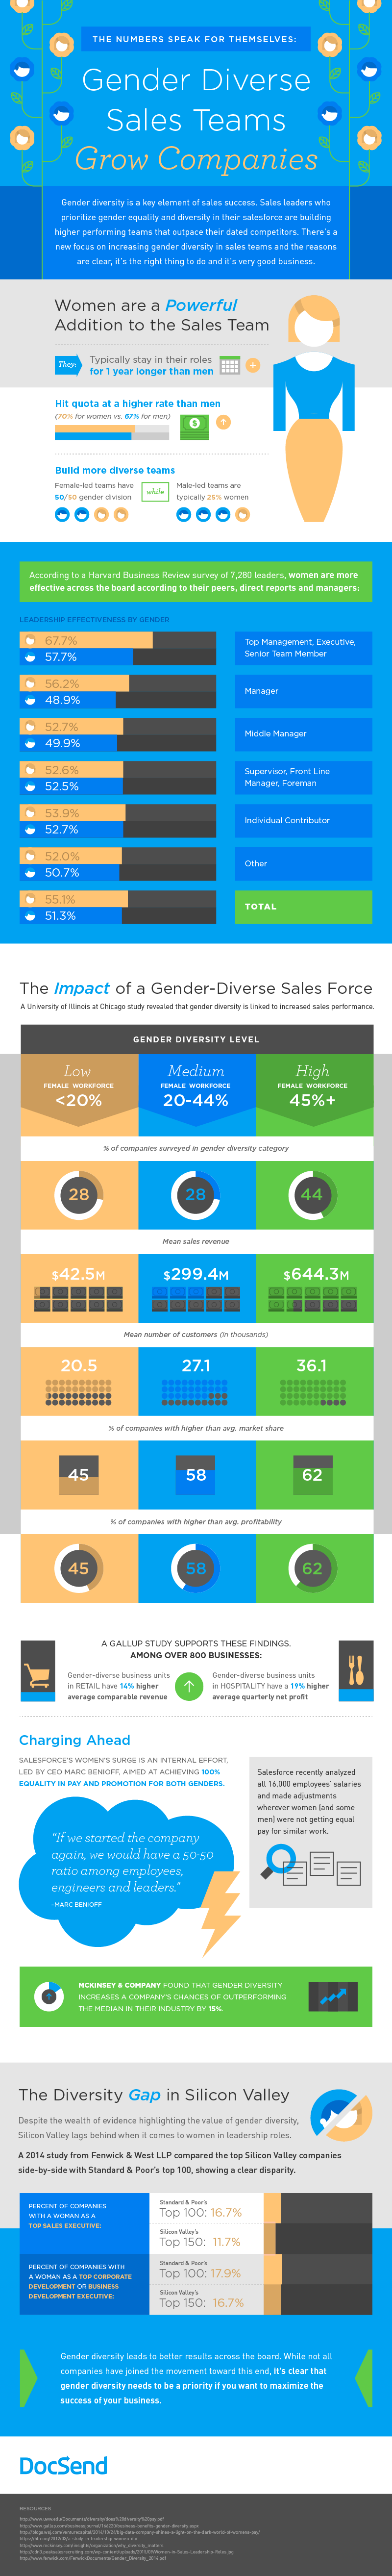 DocSend infographic on gender diverse sales teams and how they outperform homogenous sales team.